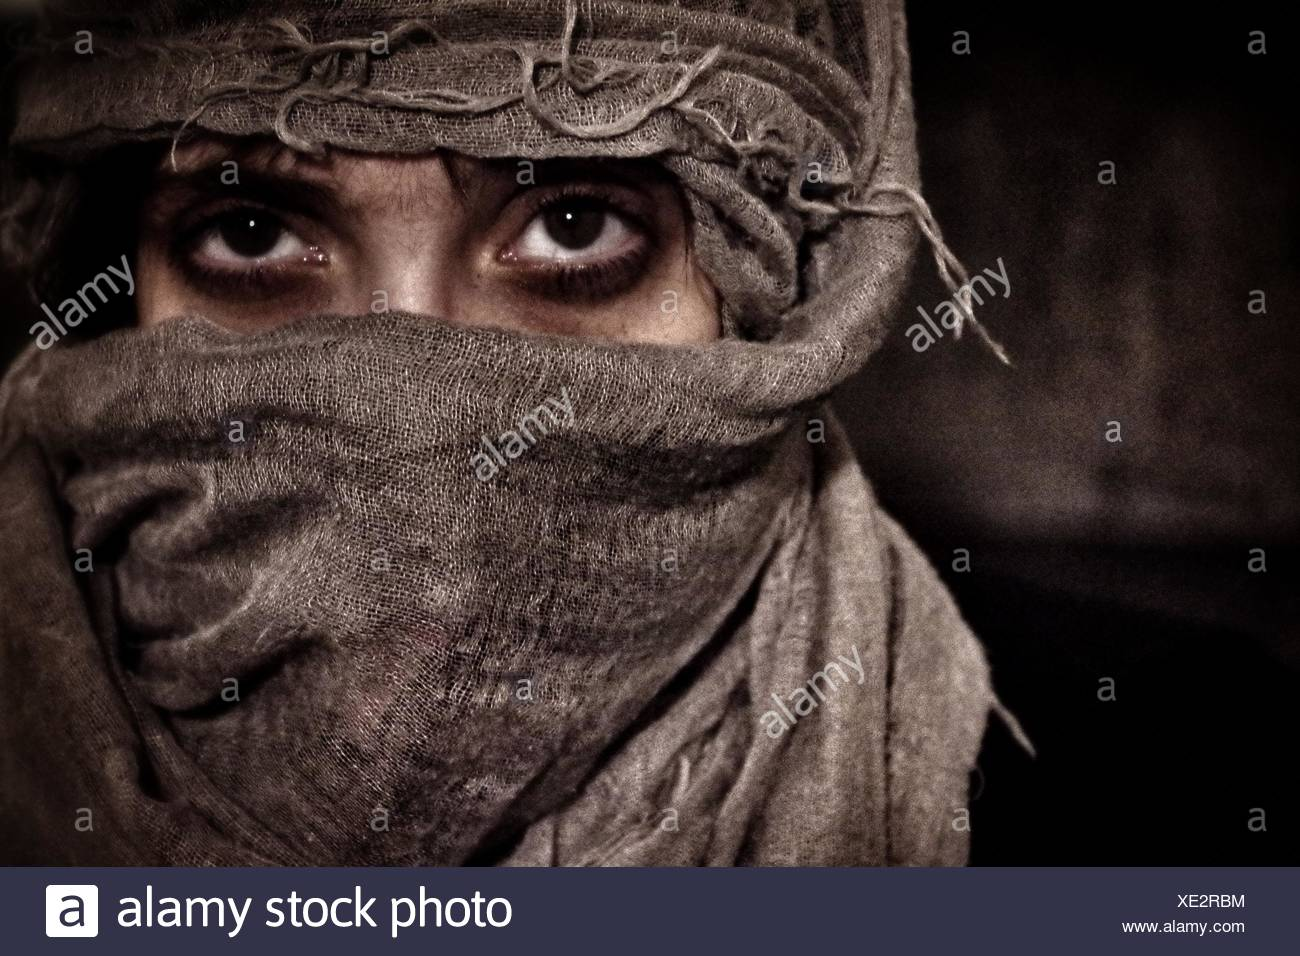 Woman Wearing Headscarf - Stock Image